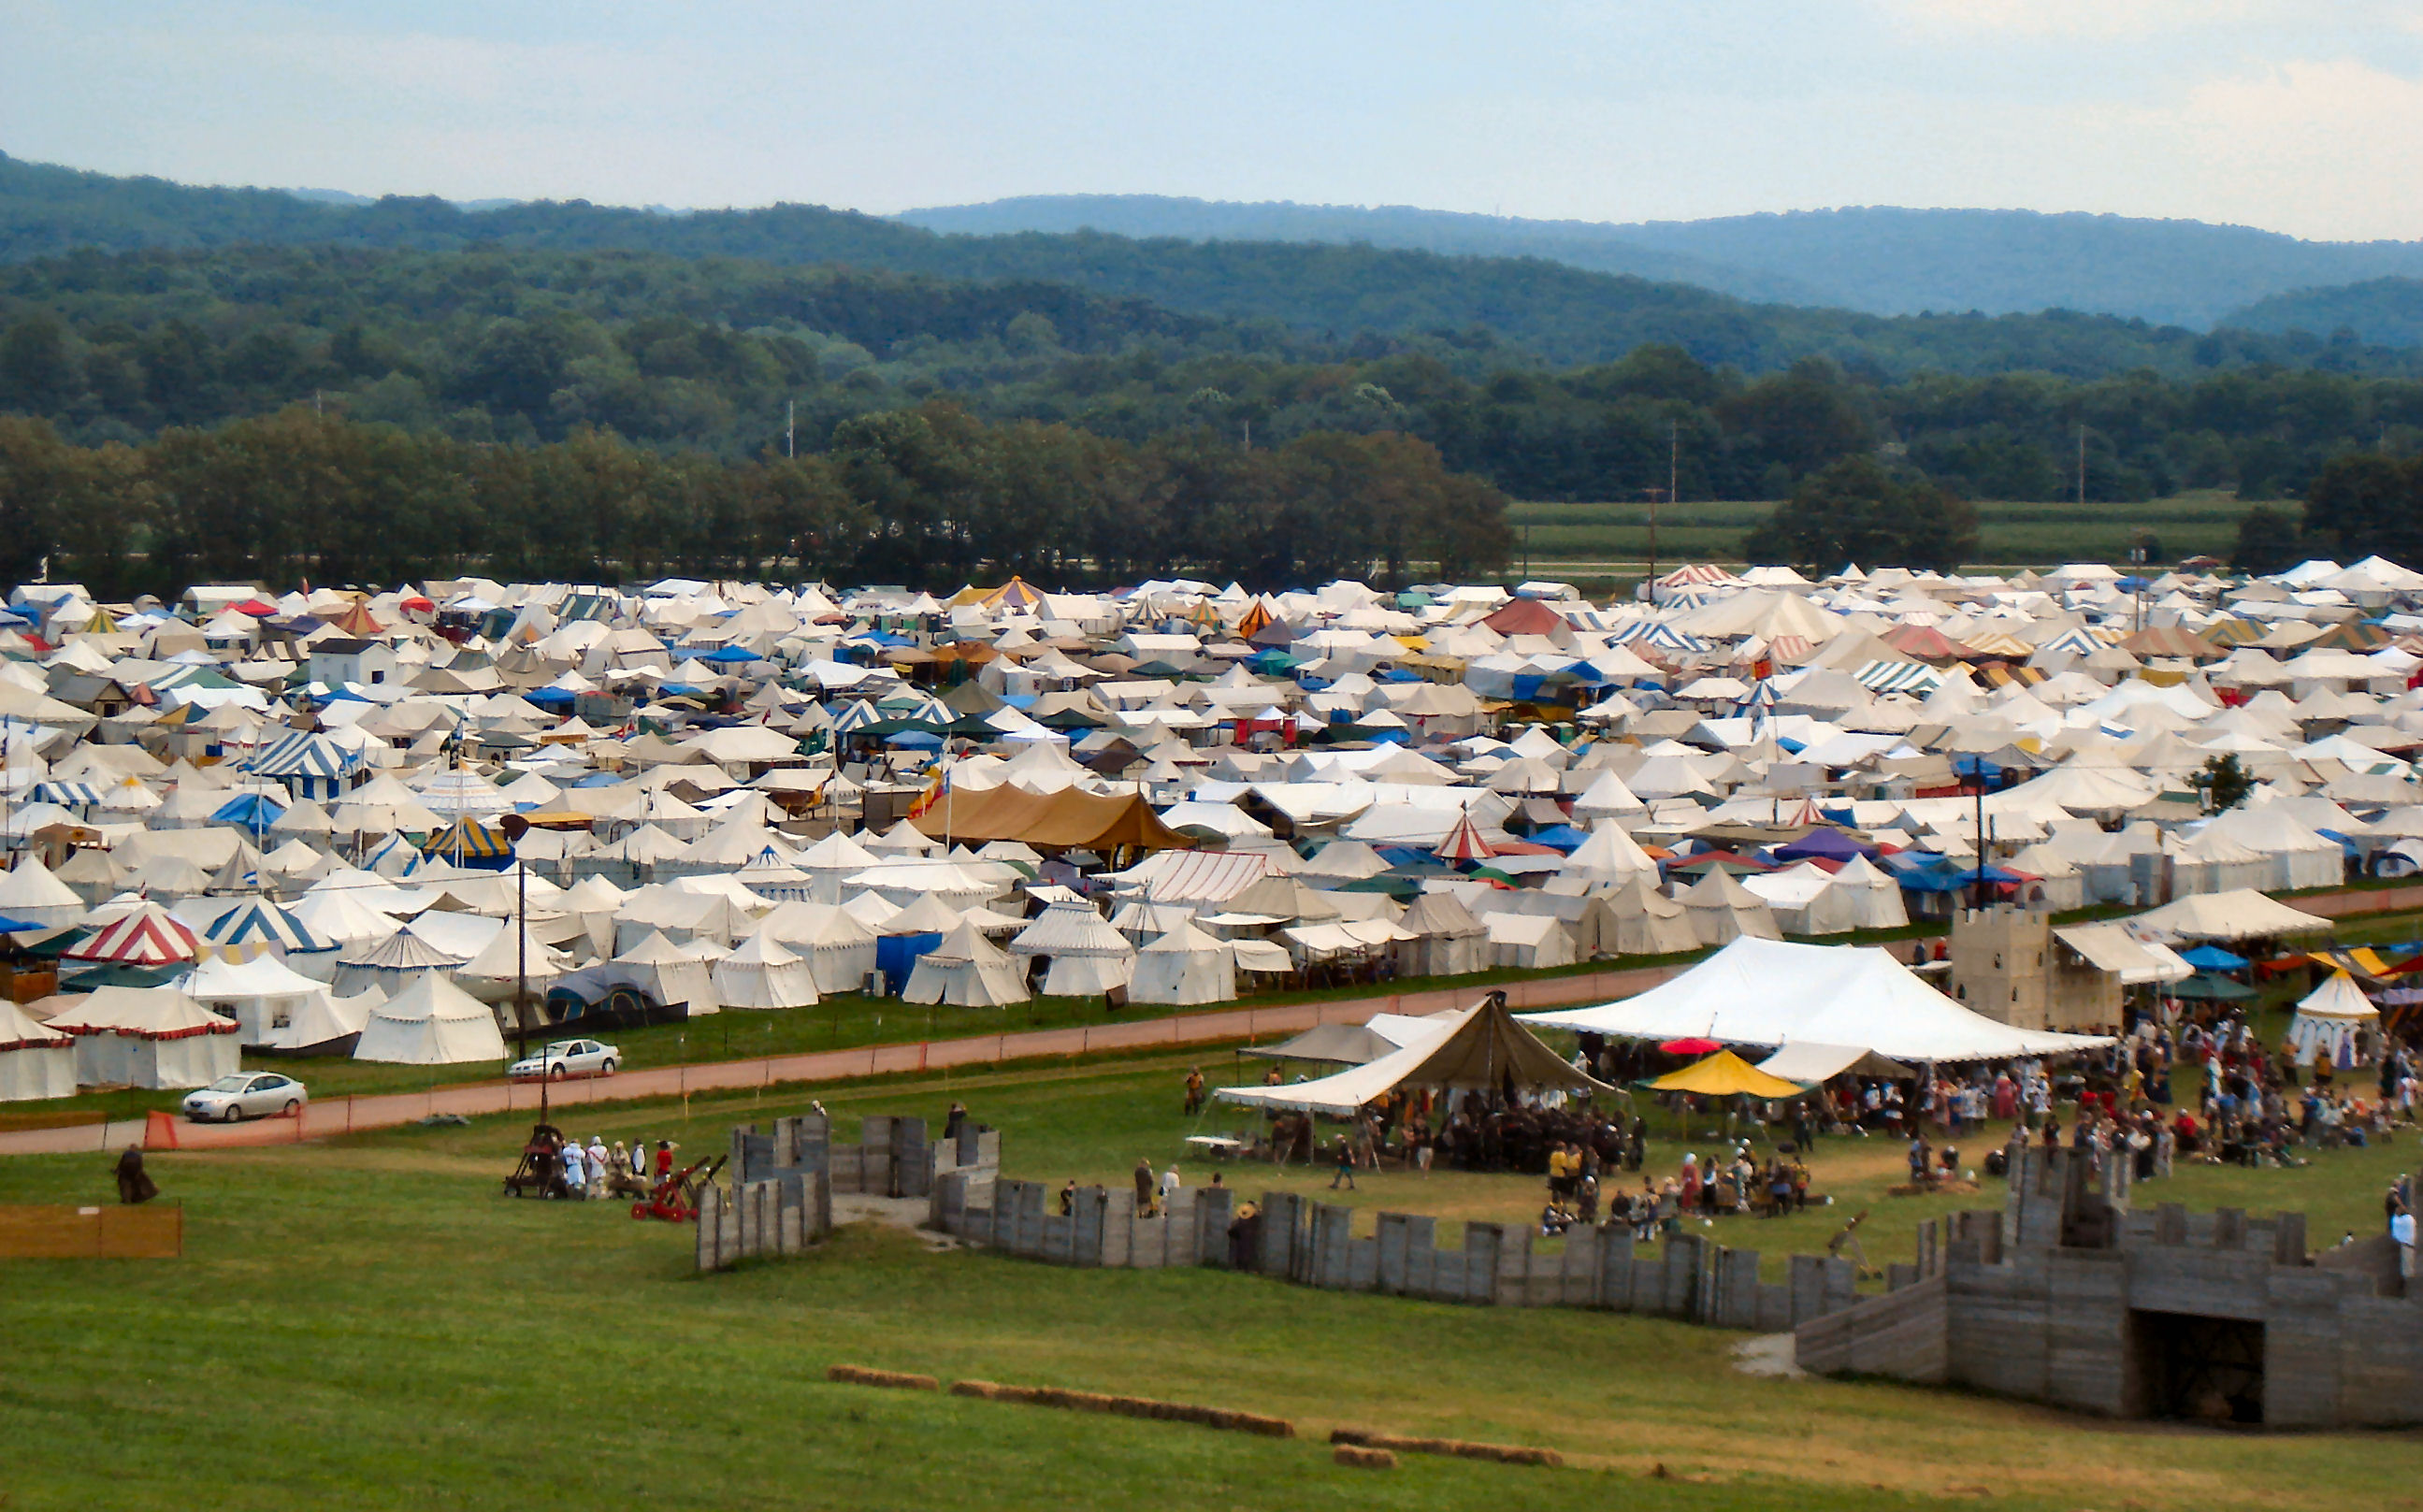 A Newcomer's Guide to Pennsic, Part 1 of 3